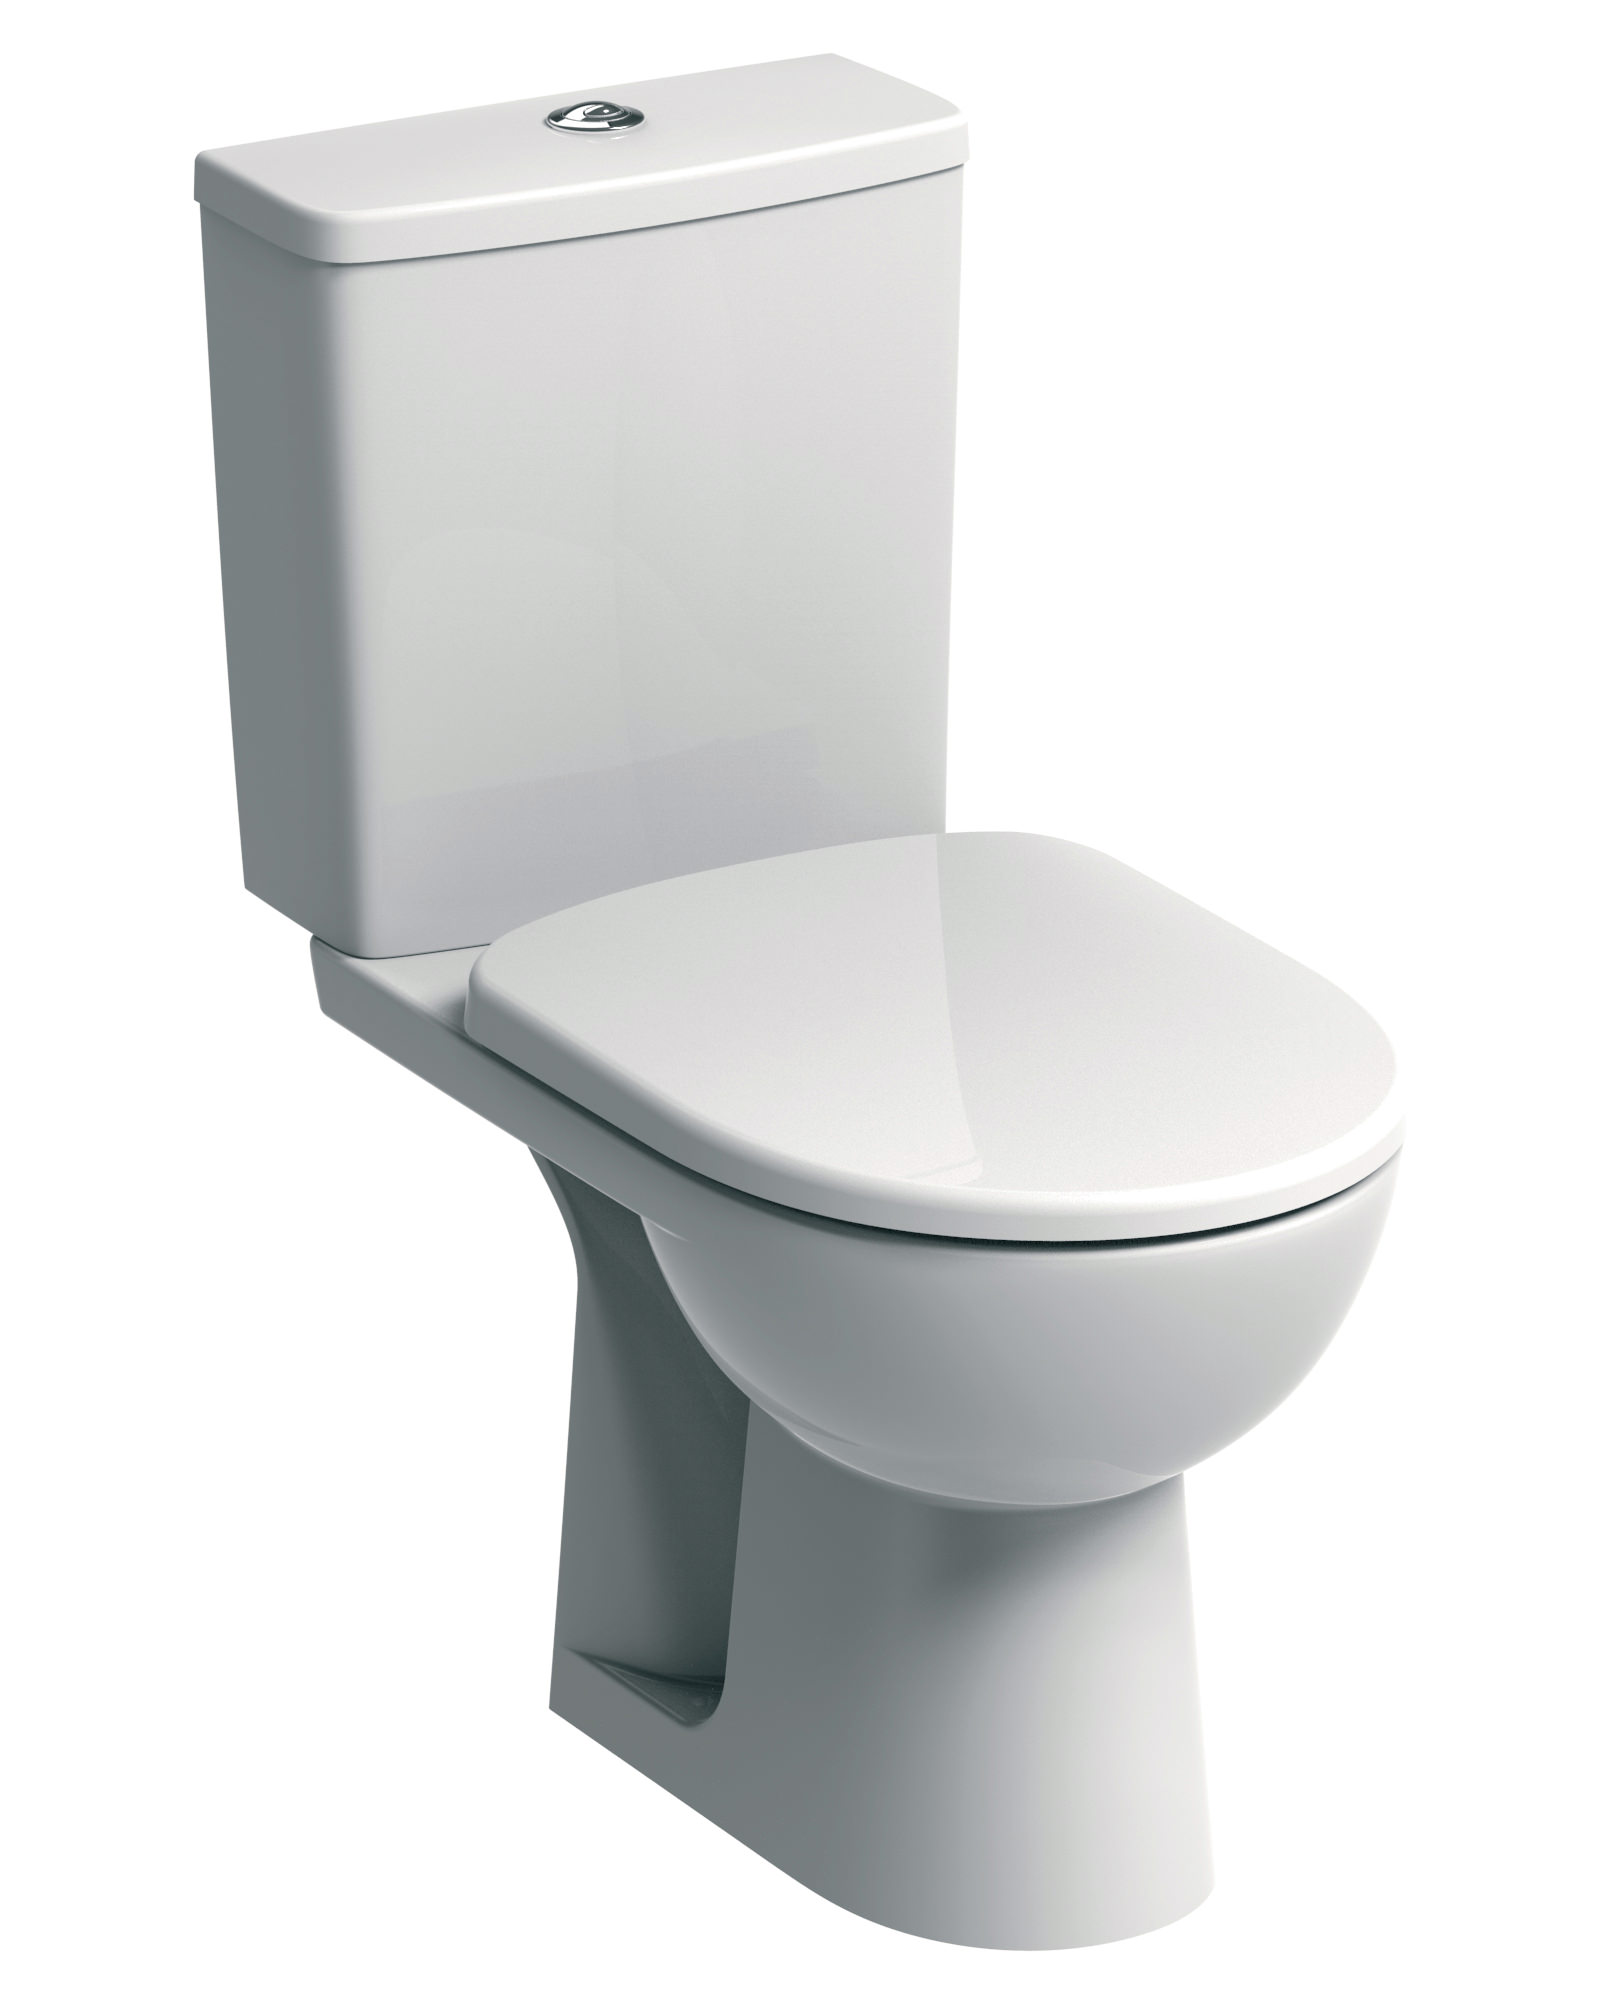 large square toilet seat. Twyford E100 Square Standard Close Coupled WC Pan 670mm And Cistern